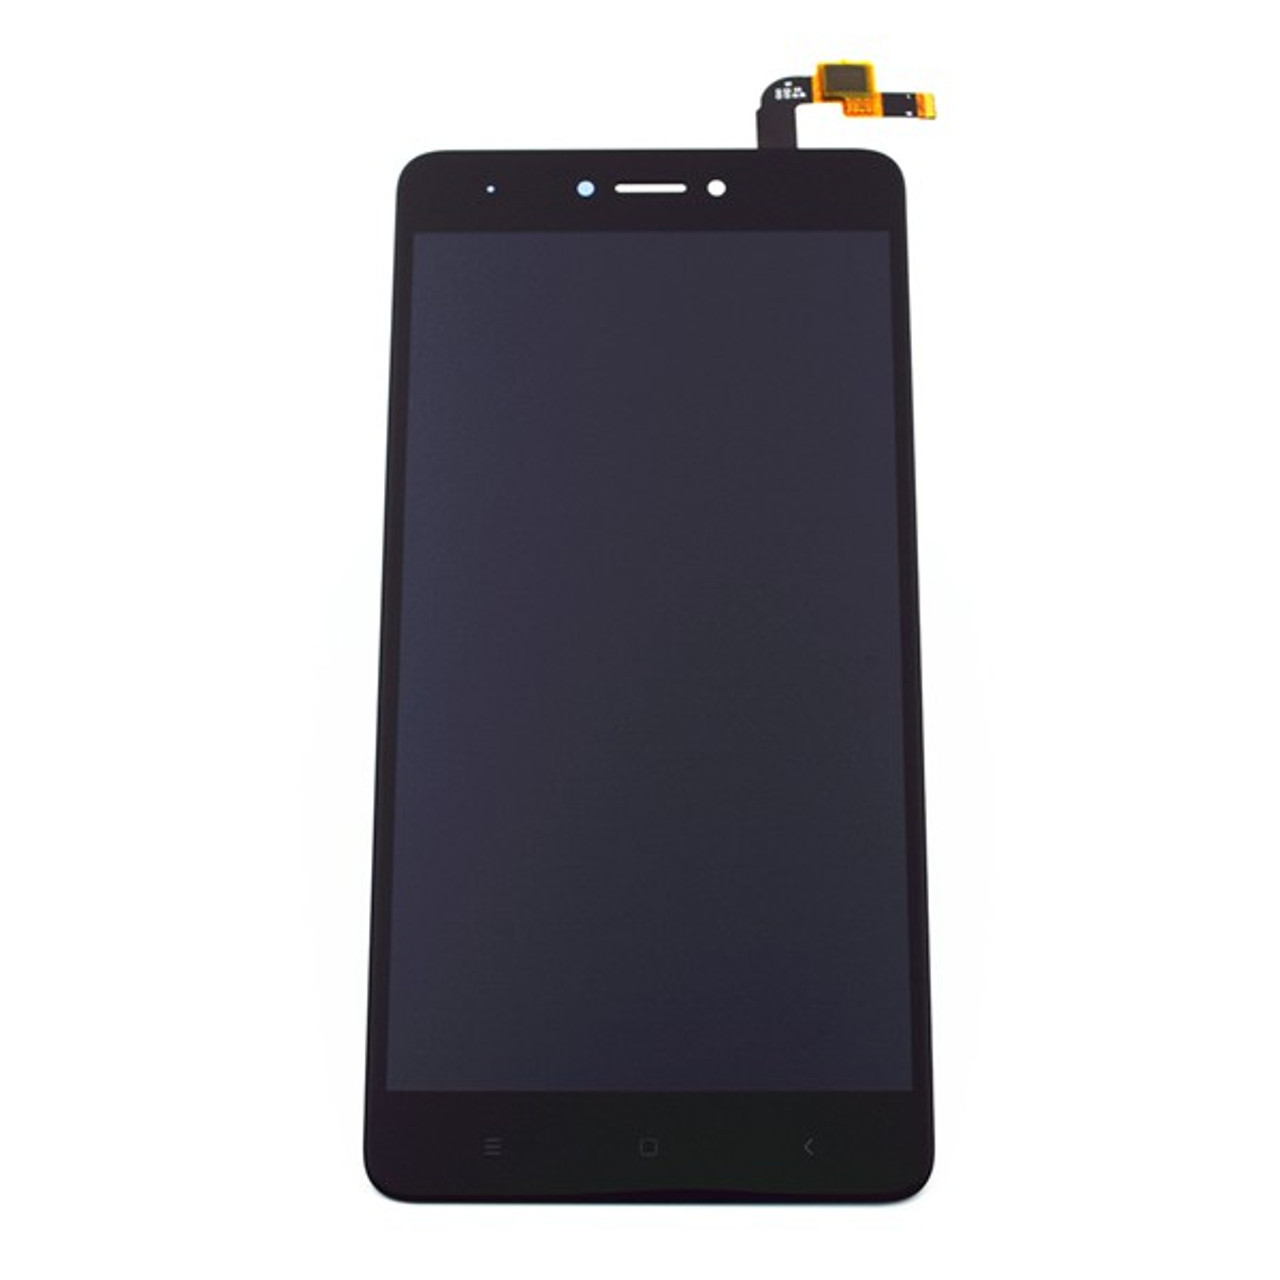 Image result for Mobile Products